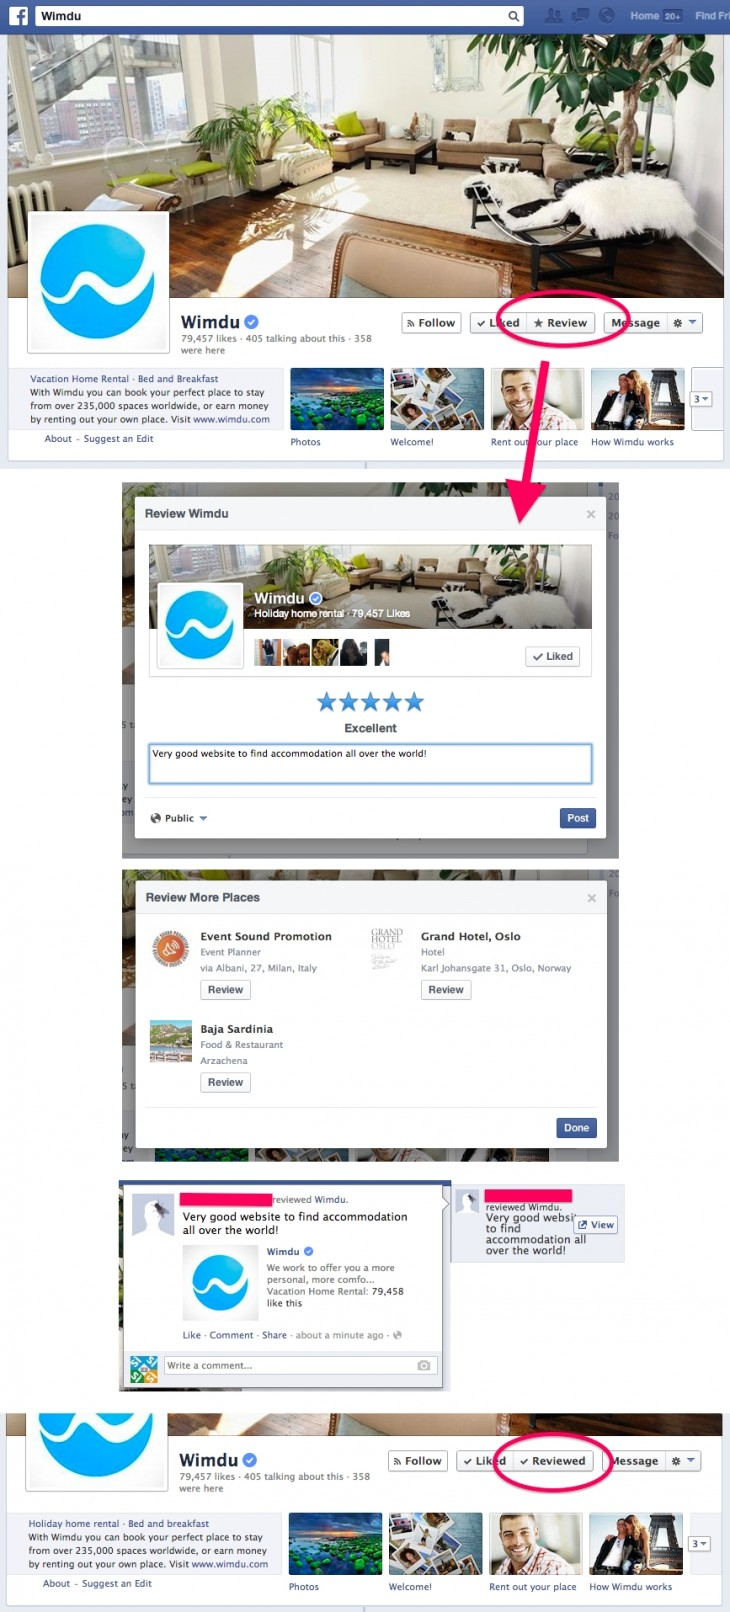 WimduReviewStepByStep 730x1612 Facebook is testing the addition of Follow and Review buttons on Pages